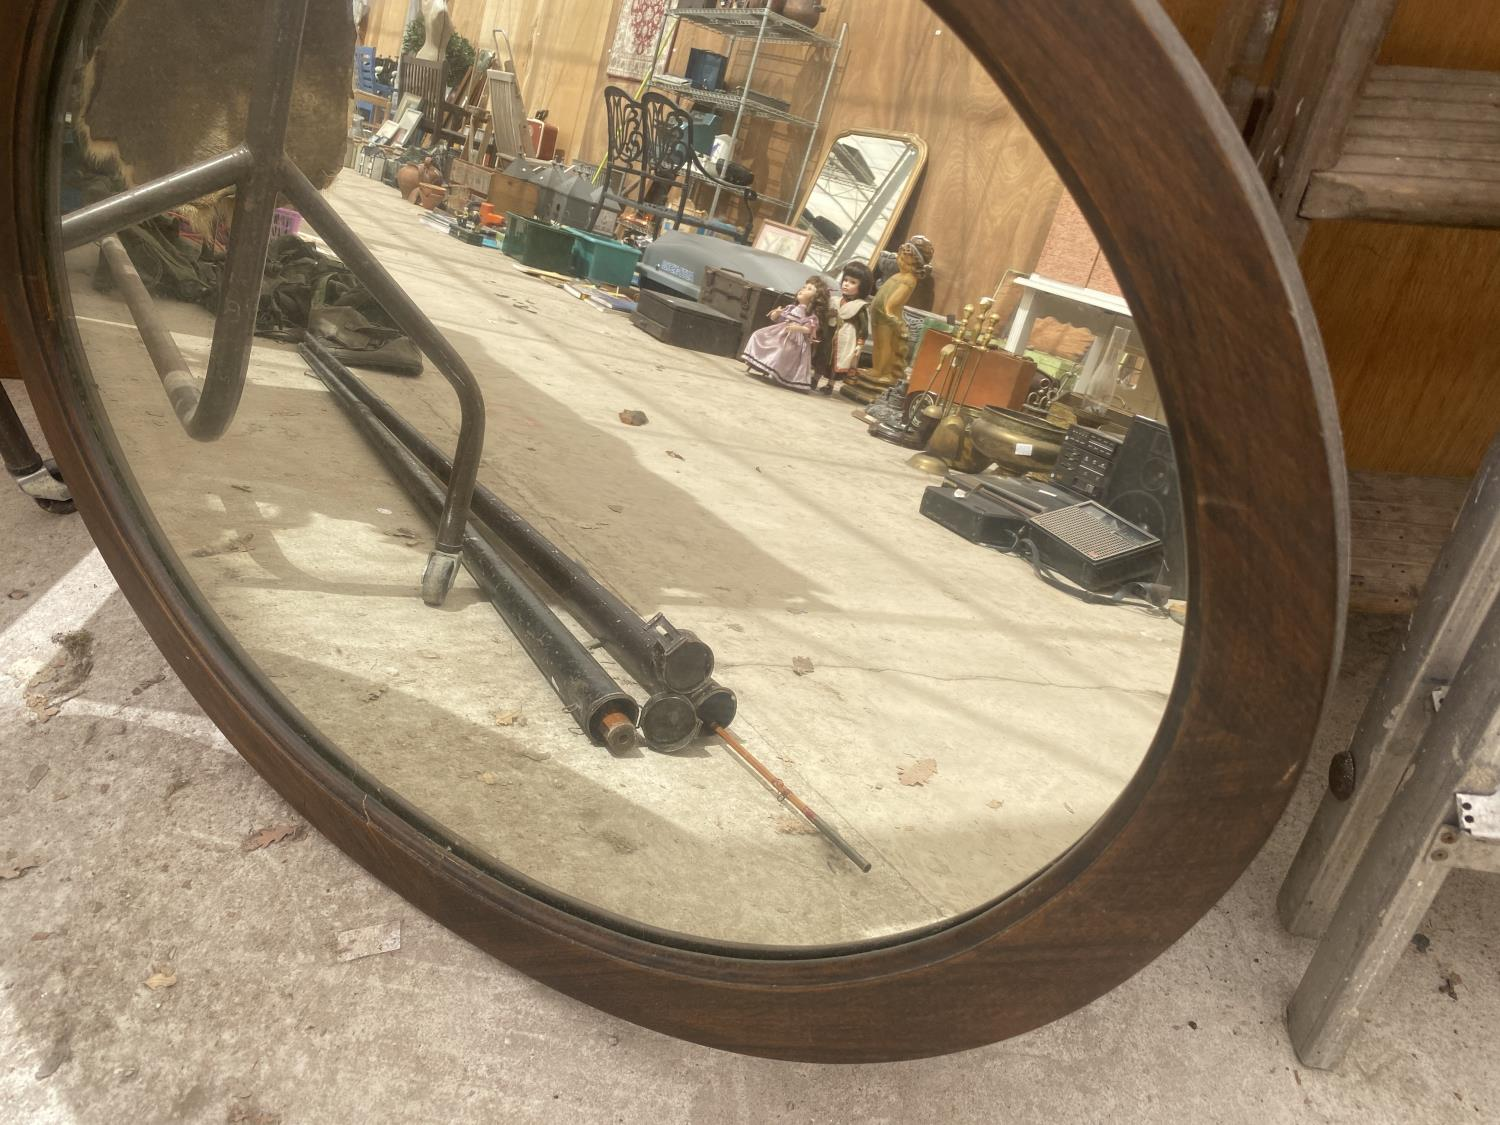 A WOODEN FRAMED OVAL MIRROR - Image 2 of 3